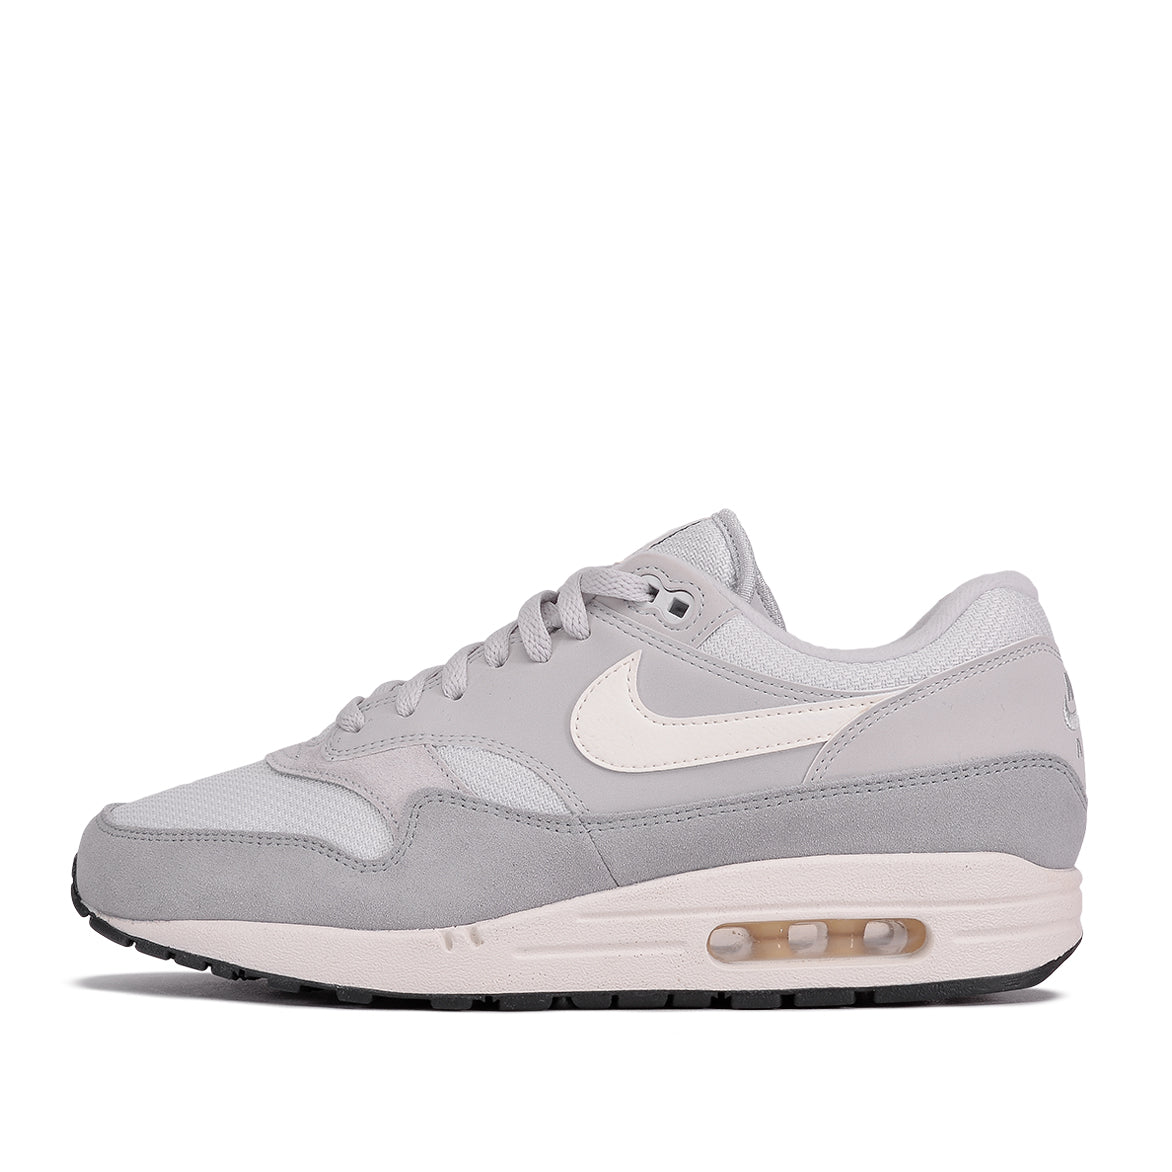 6d916315f3d AIR MAX 1 - VAST GREY / SAIL / WOLF GREY | City Blue